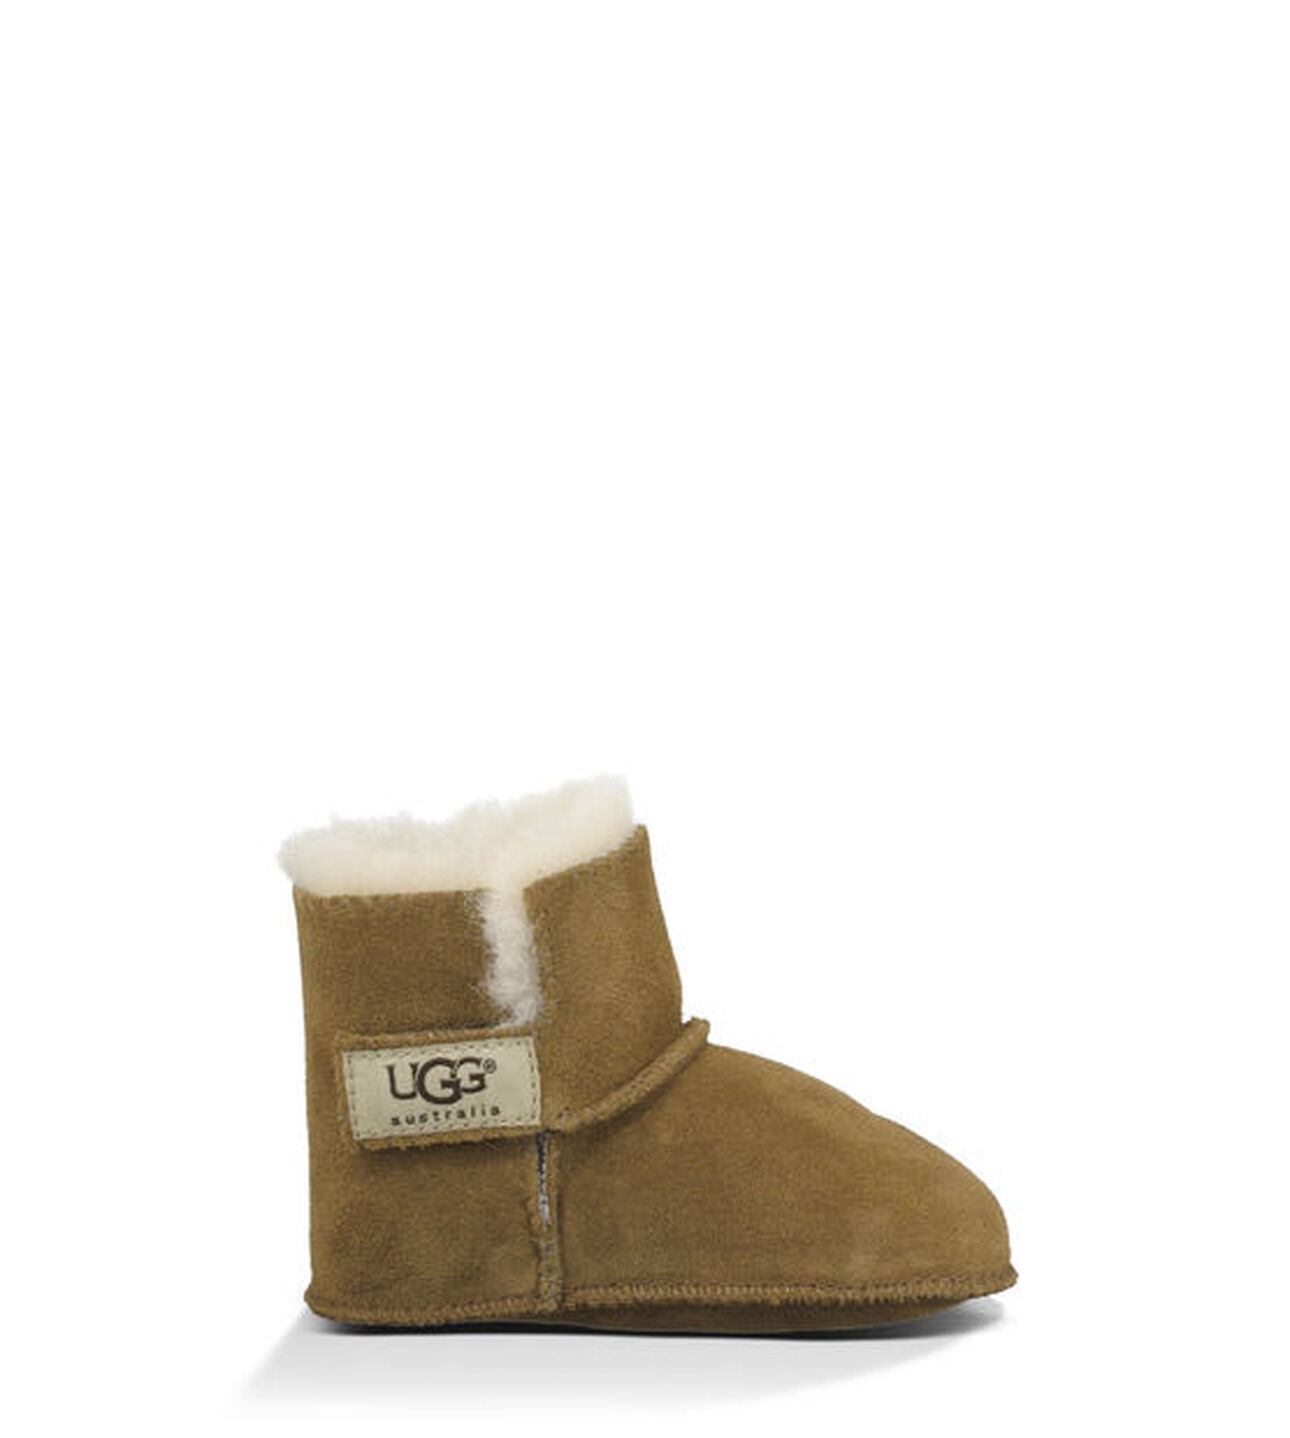 Men's Designer Clothes UGG® at Macy's come in all styles and sizes. Shop Men's Designer UGG® Clothes and get free shipping w/minimum purchase!